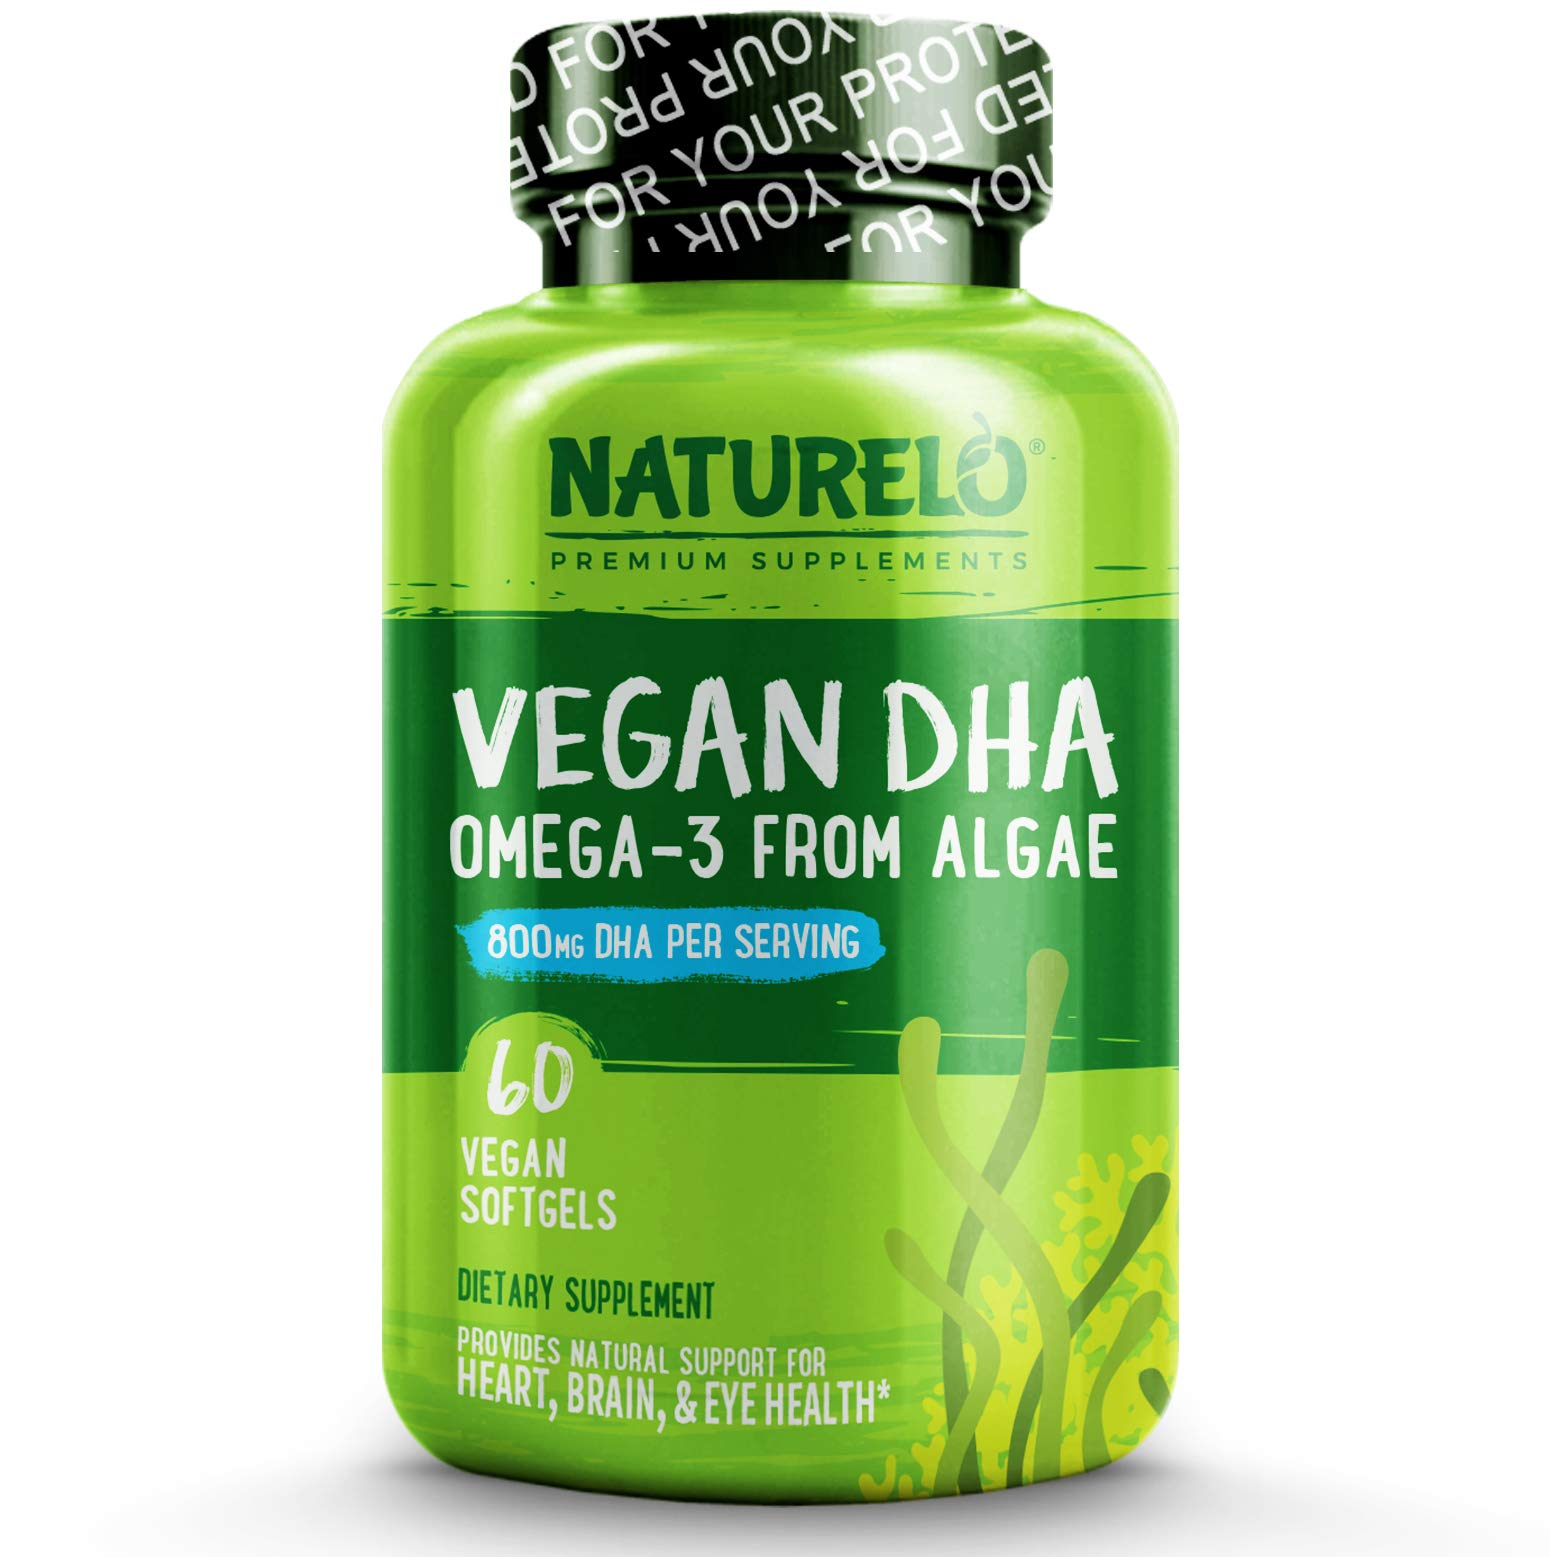 NATURELO Vegan DHA - Omega 3 Oil from Algae - Best Supplement for Brain, Heart, Joint, Eye Health - Provides Essential Fatty Acids for Women, Men and Kids - Complements Prenatal Vitamins - 60 Softgels by NATURELO